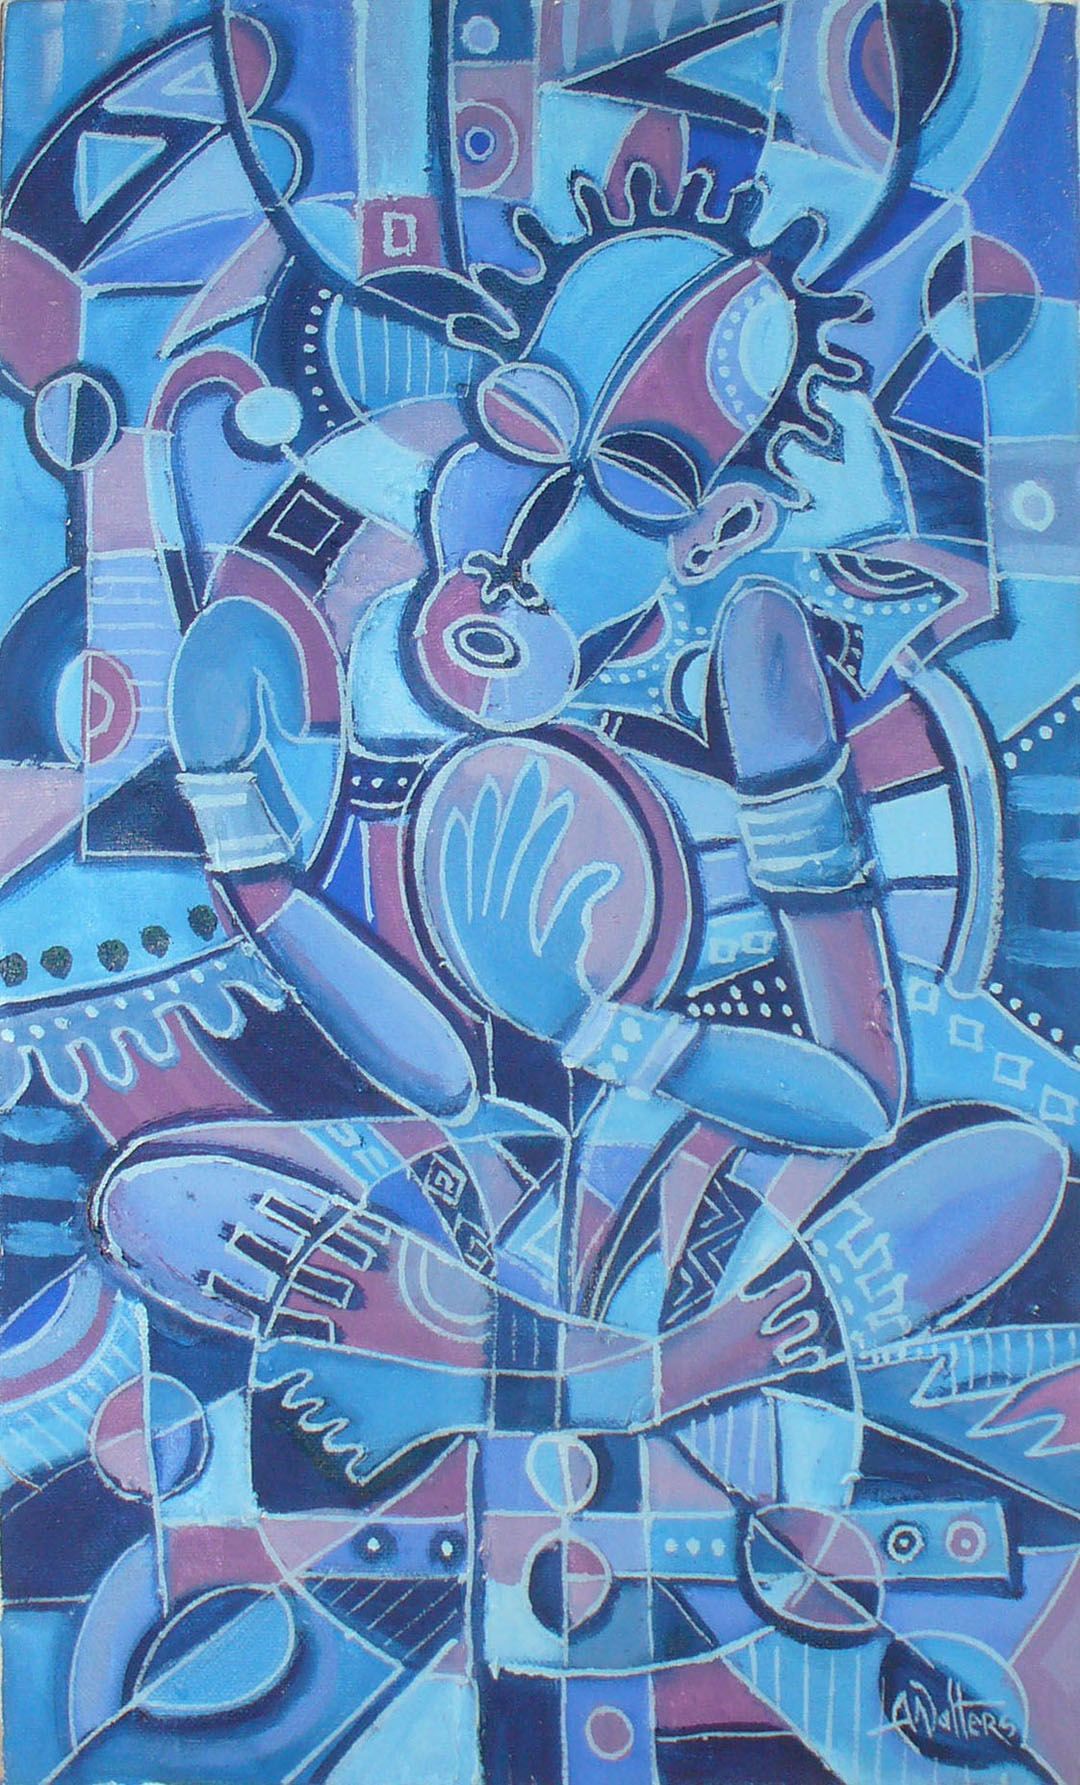 Drummer and the Flutist 2 music painting